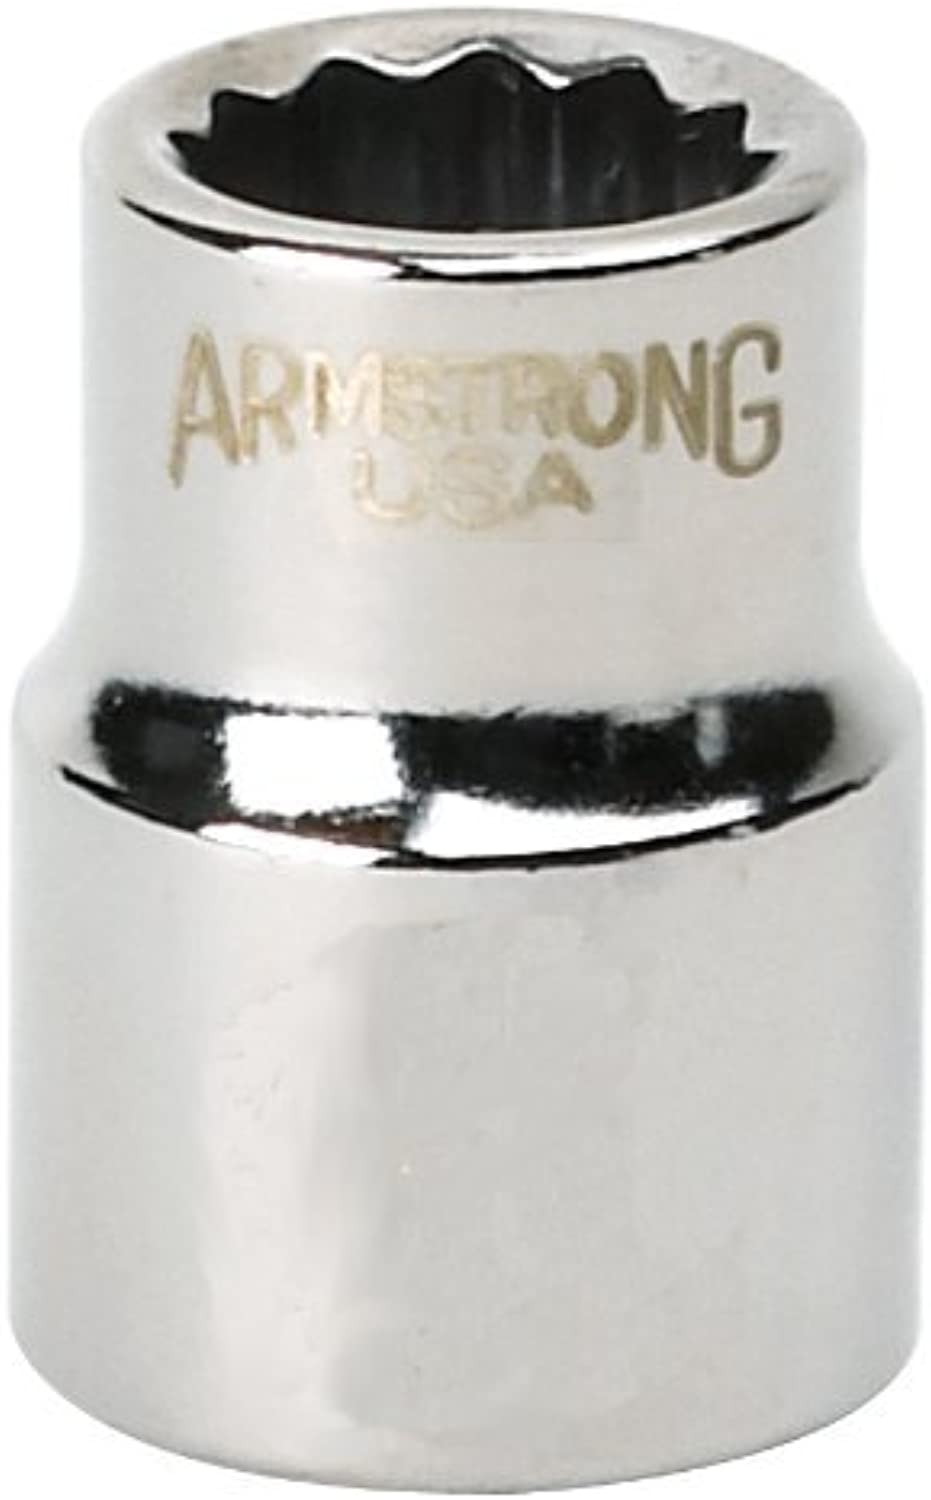 Armstrong 37-108 1 4-Inch Drive 12 Point Standard Socket, Socket, Socket, 8mm by Apex Tool Group B01LZRMU6W   Sehr gute Qualität  8a0388